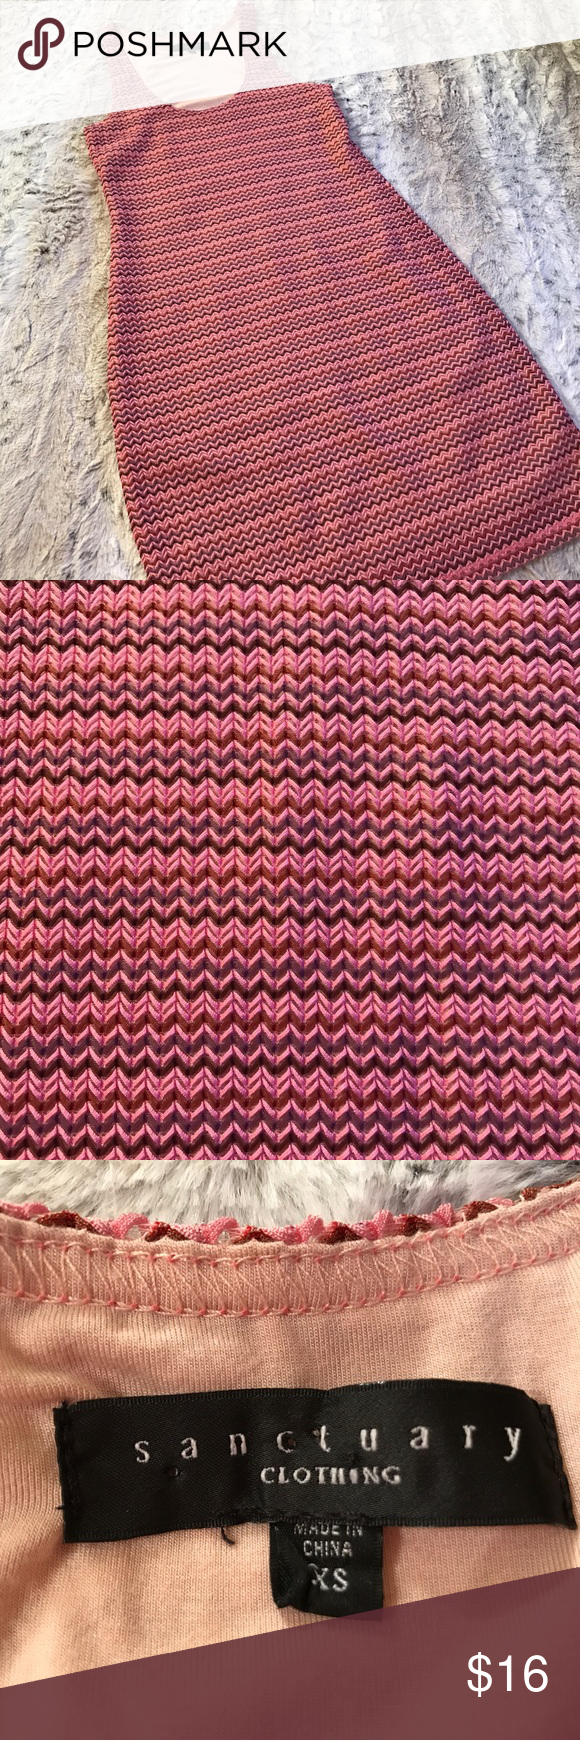 Sanctuary Clothing StretchKnit ChevronStripe Dress Sanctuary Clothing Size XS Stretch Knit Chevron Stripe Sleeveless Dress. Pink/Purple/Brown. Measurements are shown in above pictures.  No trades. -1422 Sanctuary Dresses